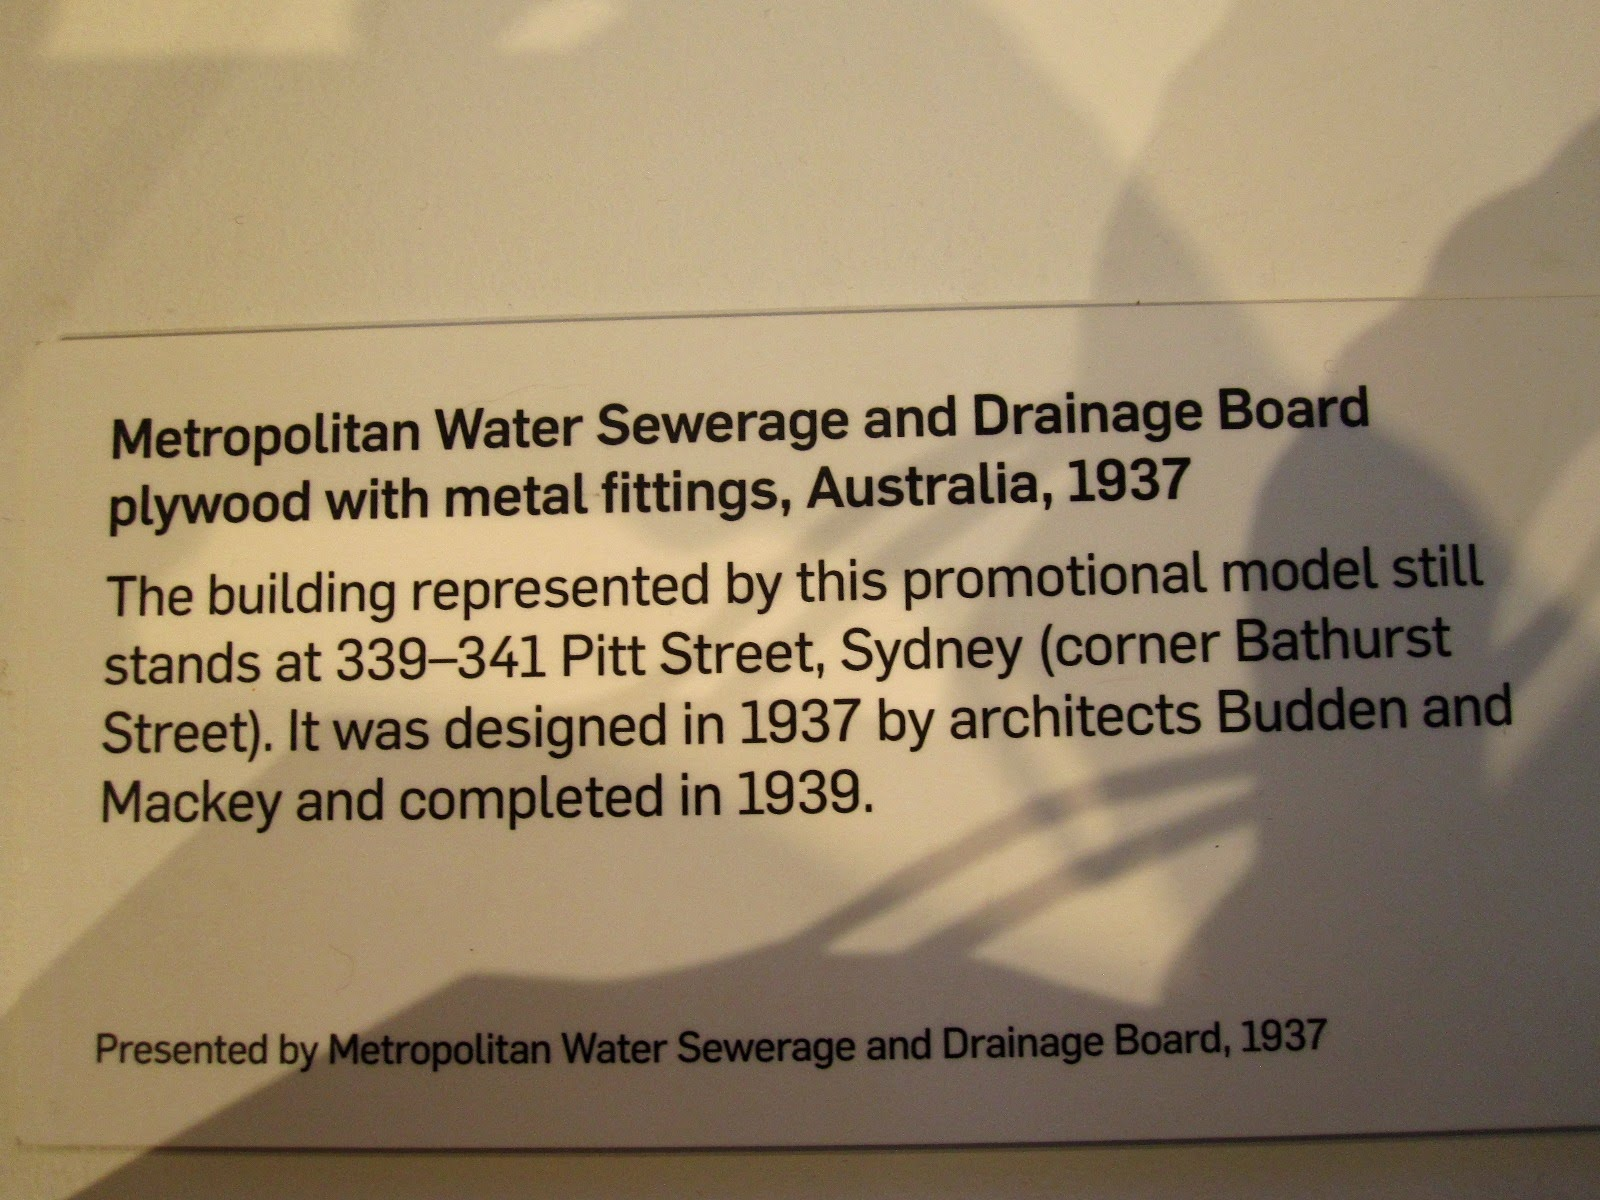 Exhibition sign for the model of the Metropolitan Water Sewerage and Drainage Board building.